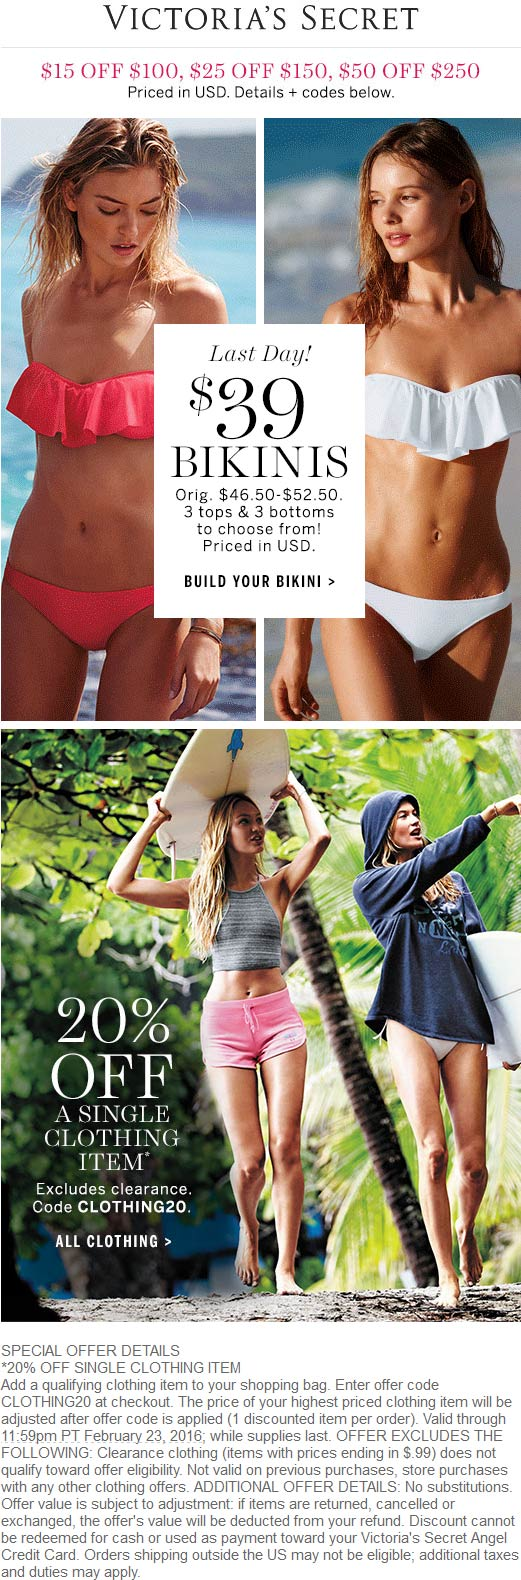 Victorias Secret Coupon February 2019 20% off a single clothing item online at Victorias Secret via promo code CLOTHING20